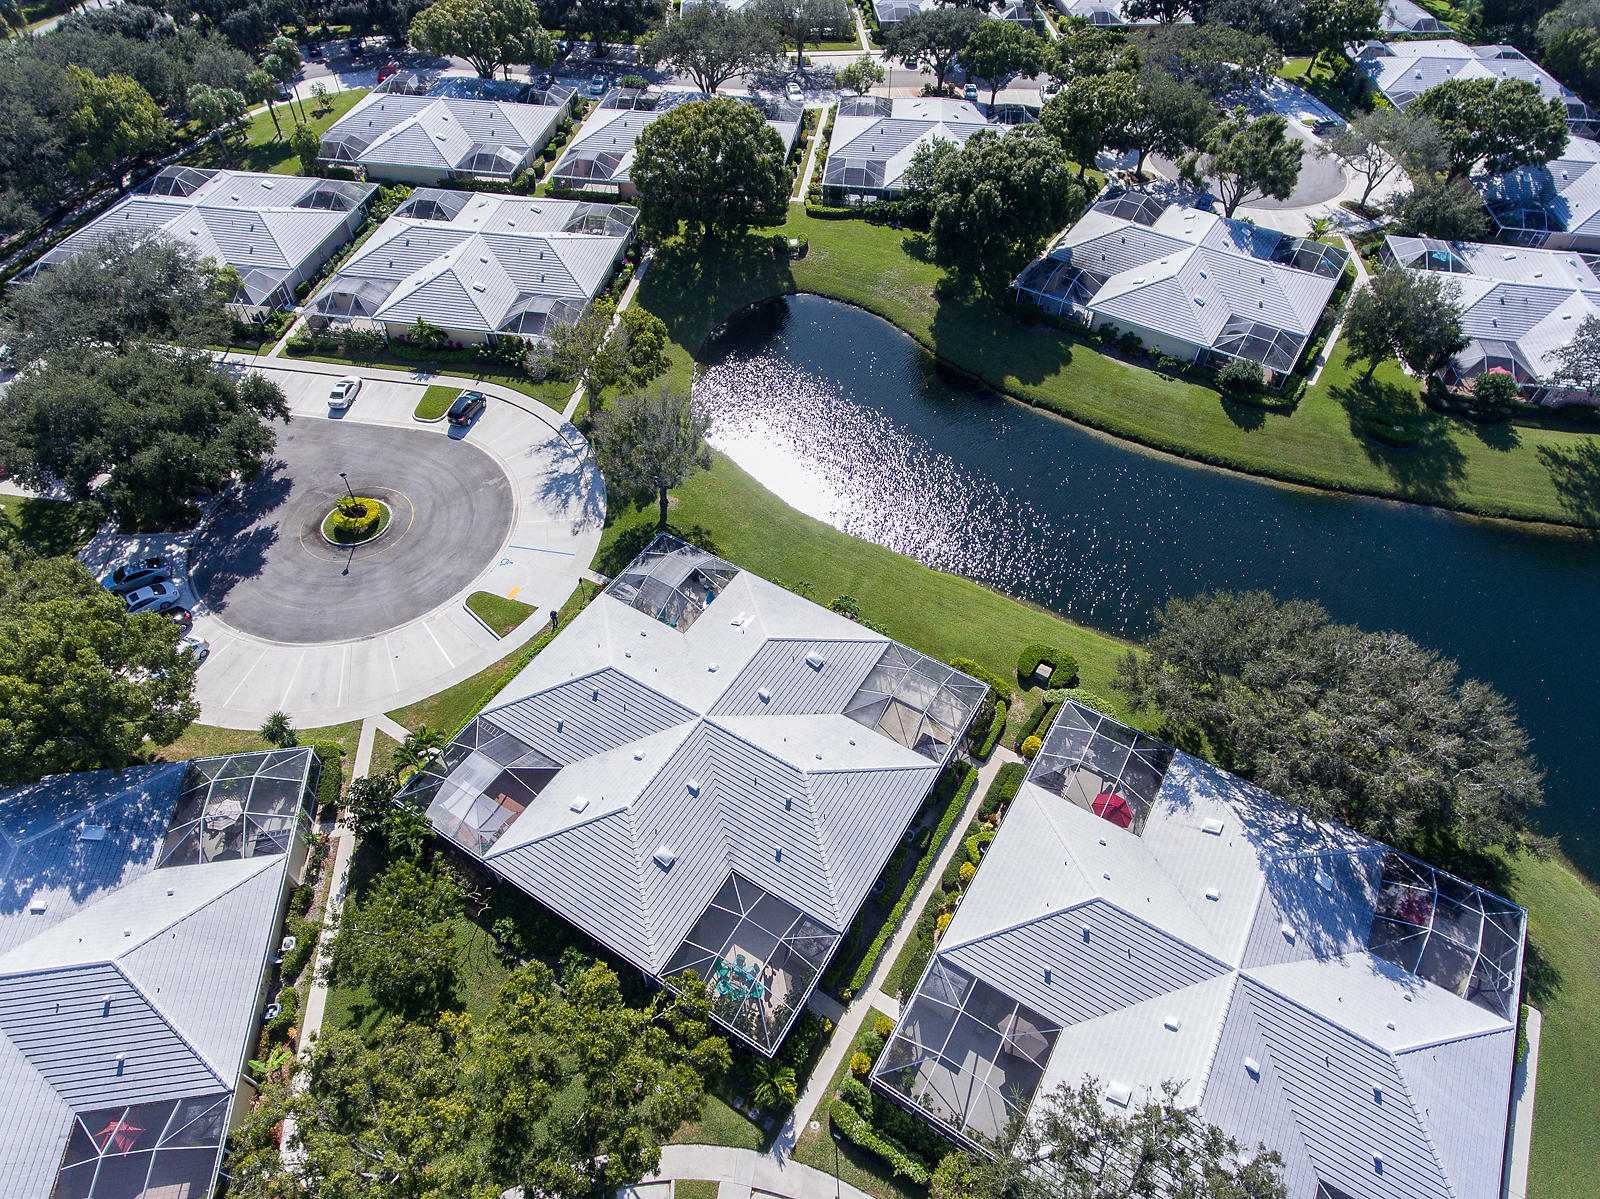 LAKE CATHERINE PALM BEACH GARDENS REAL ESTATE